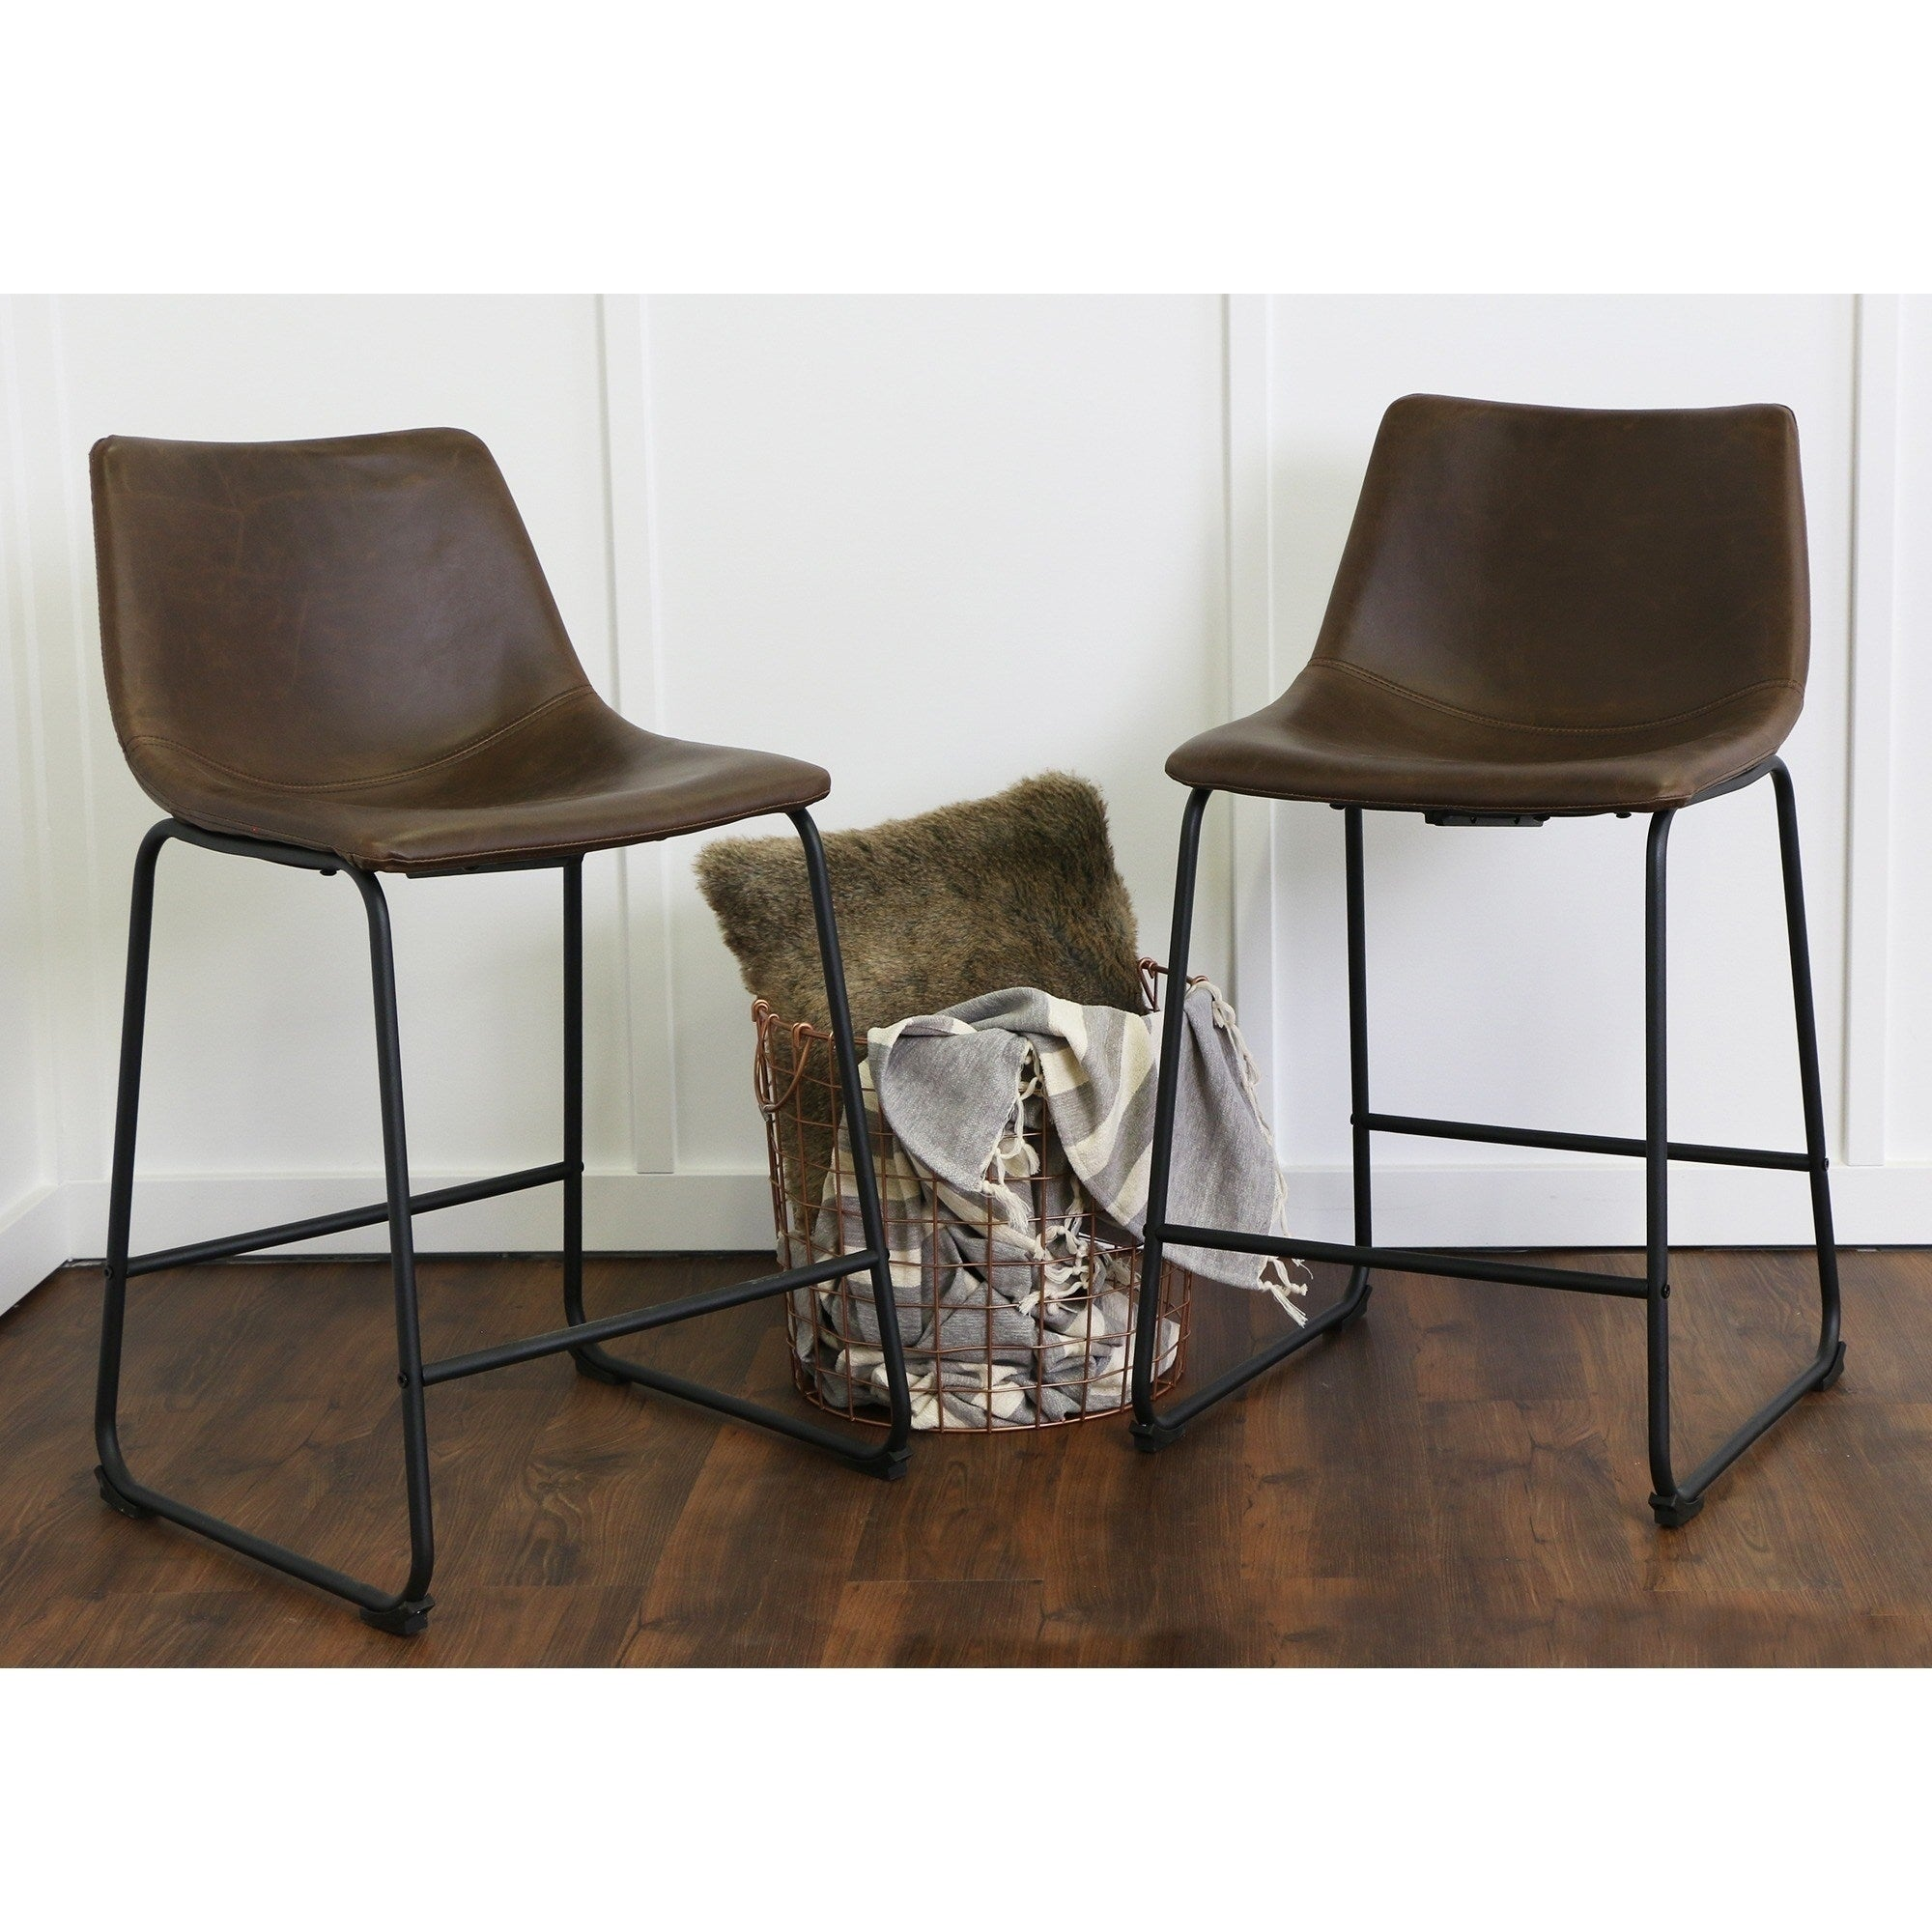 Shop 24 industrial faux leather counter stools 18 x 22 x 36h free shipping today overstock com 11816122